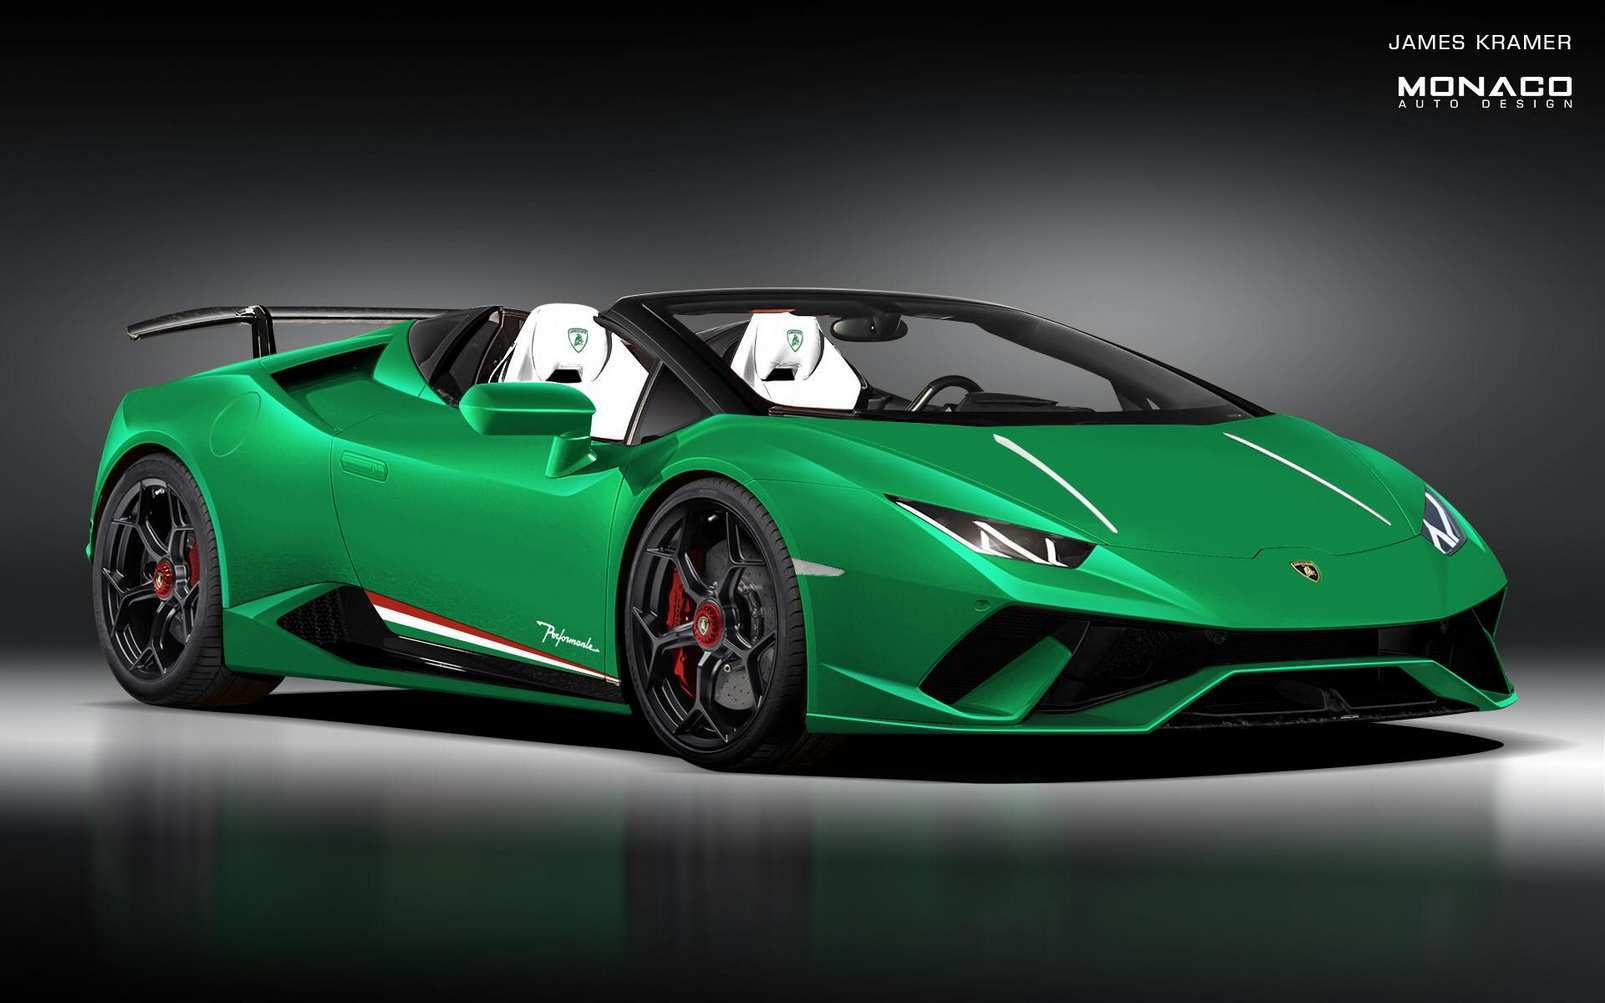 84 All New 2019 Lamborghini Huracan Performante Configurations for 2019 Lamborghini Huracan Performante